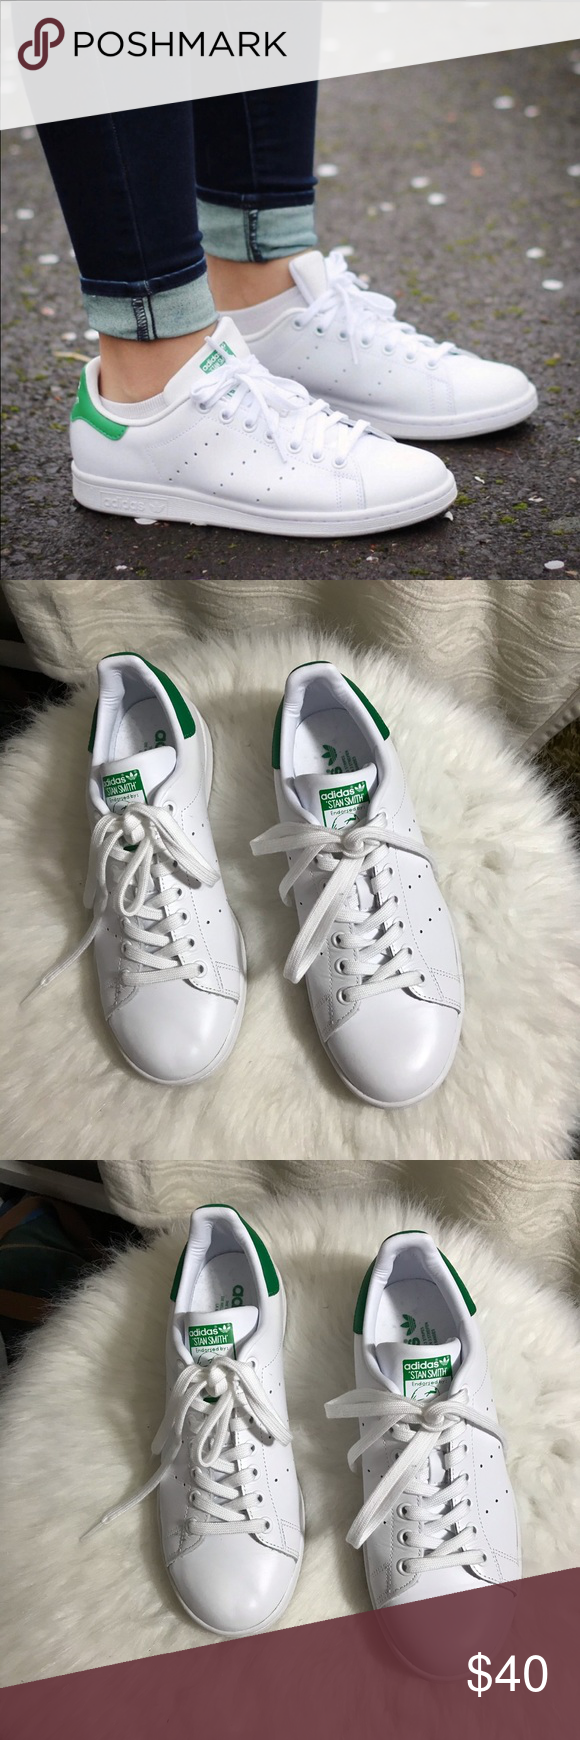 Crítico doble corto  Adidas Stan Smith Sneakers White Green | Stan smith sneakers, Adidas stan  smith sneakers, Adidas stan smith